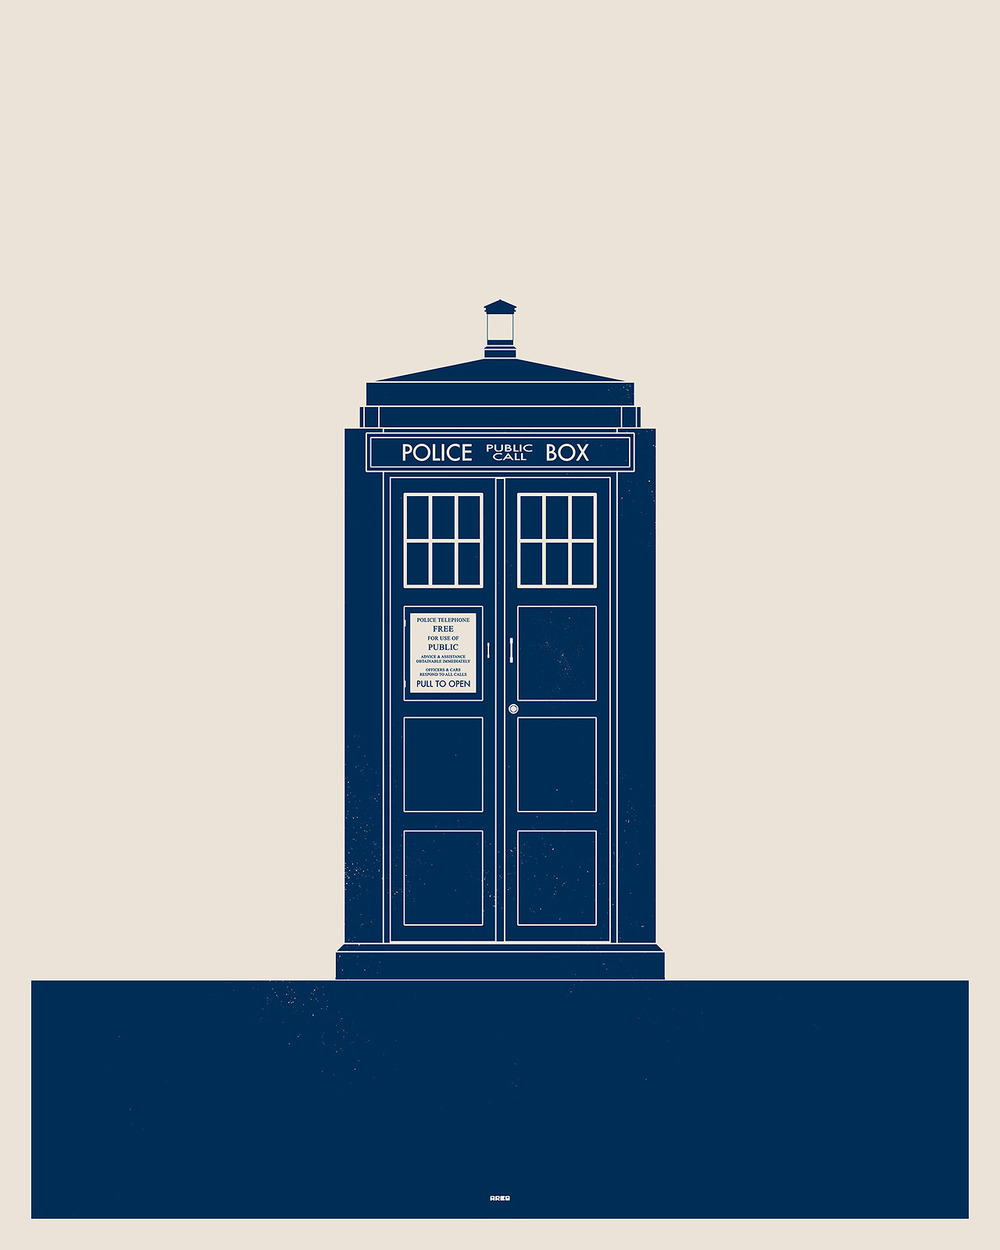 doctor-who-glow-in-the-dark-art-by-matt-ferguson